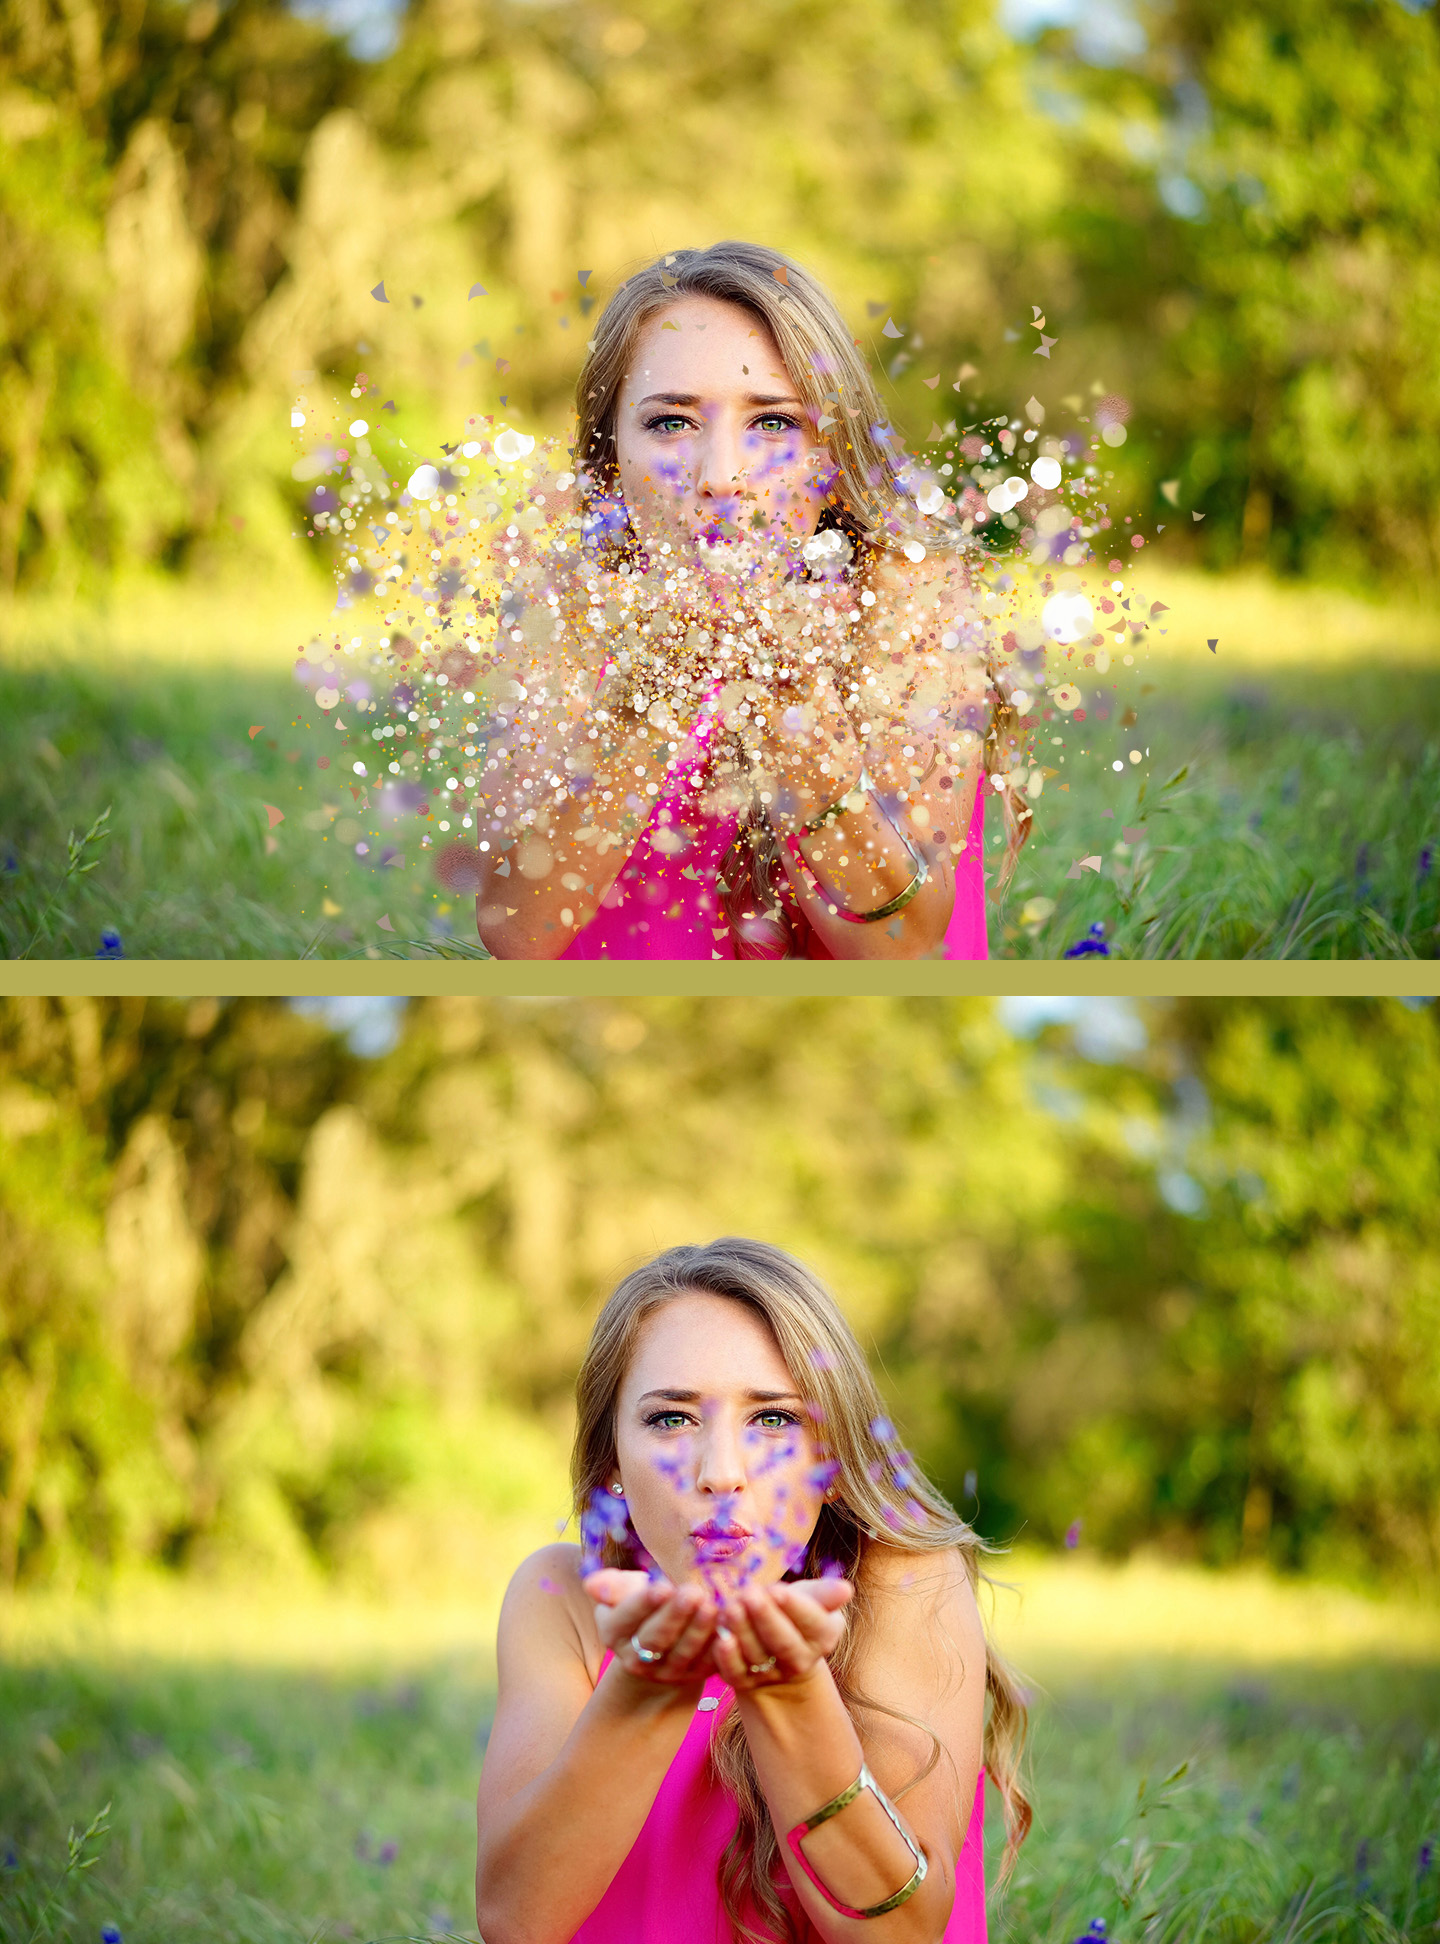 20 Blowing glitter Photoshop Overlays, PNG with transparent background,  easy to use, drag and drop, photoshop overlay, glitter, gold glitter.